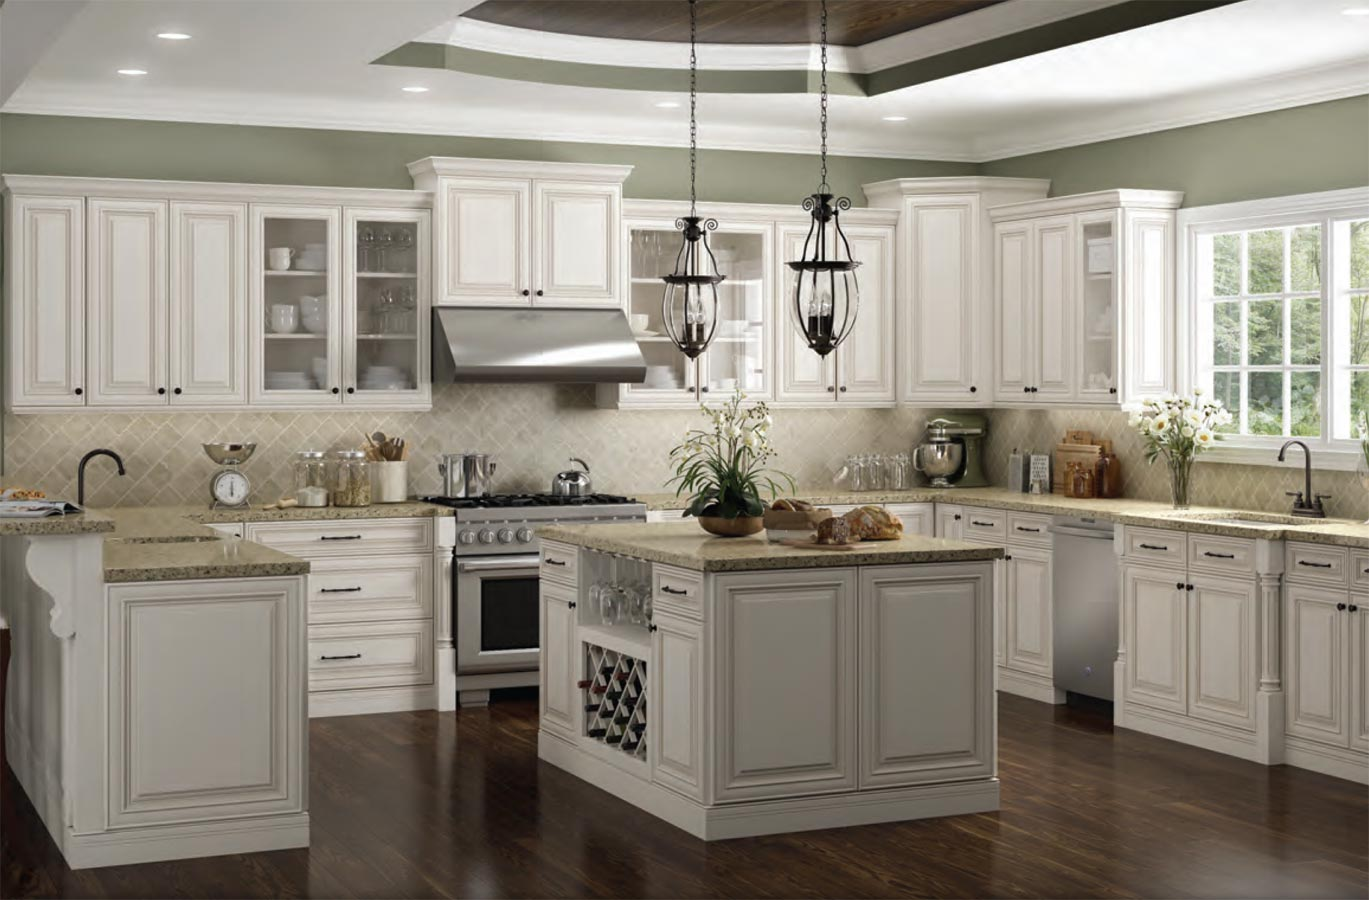 - Charleston Antique White Kitchen Cabinet - Thecabinetbarn.com